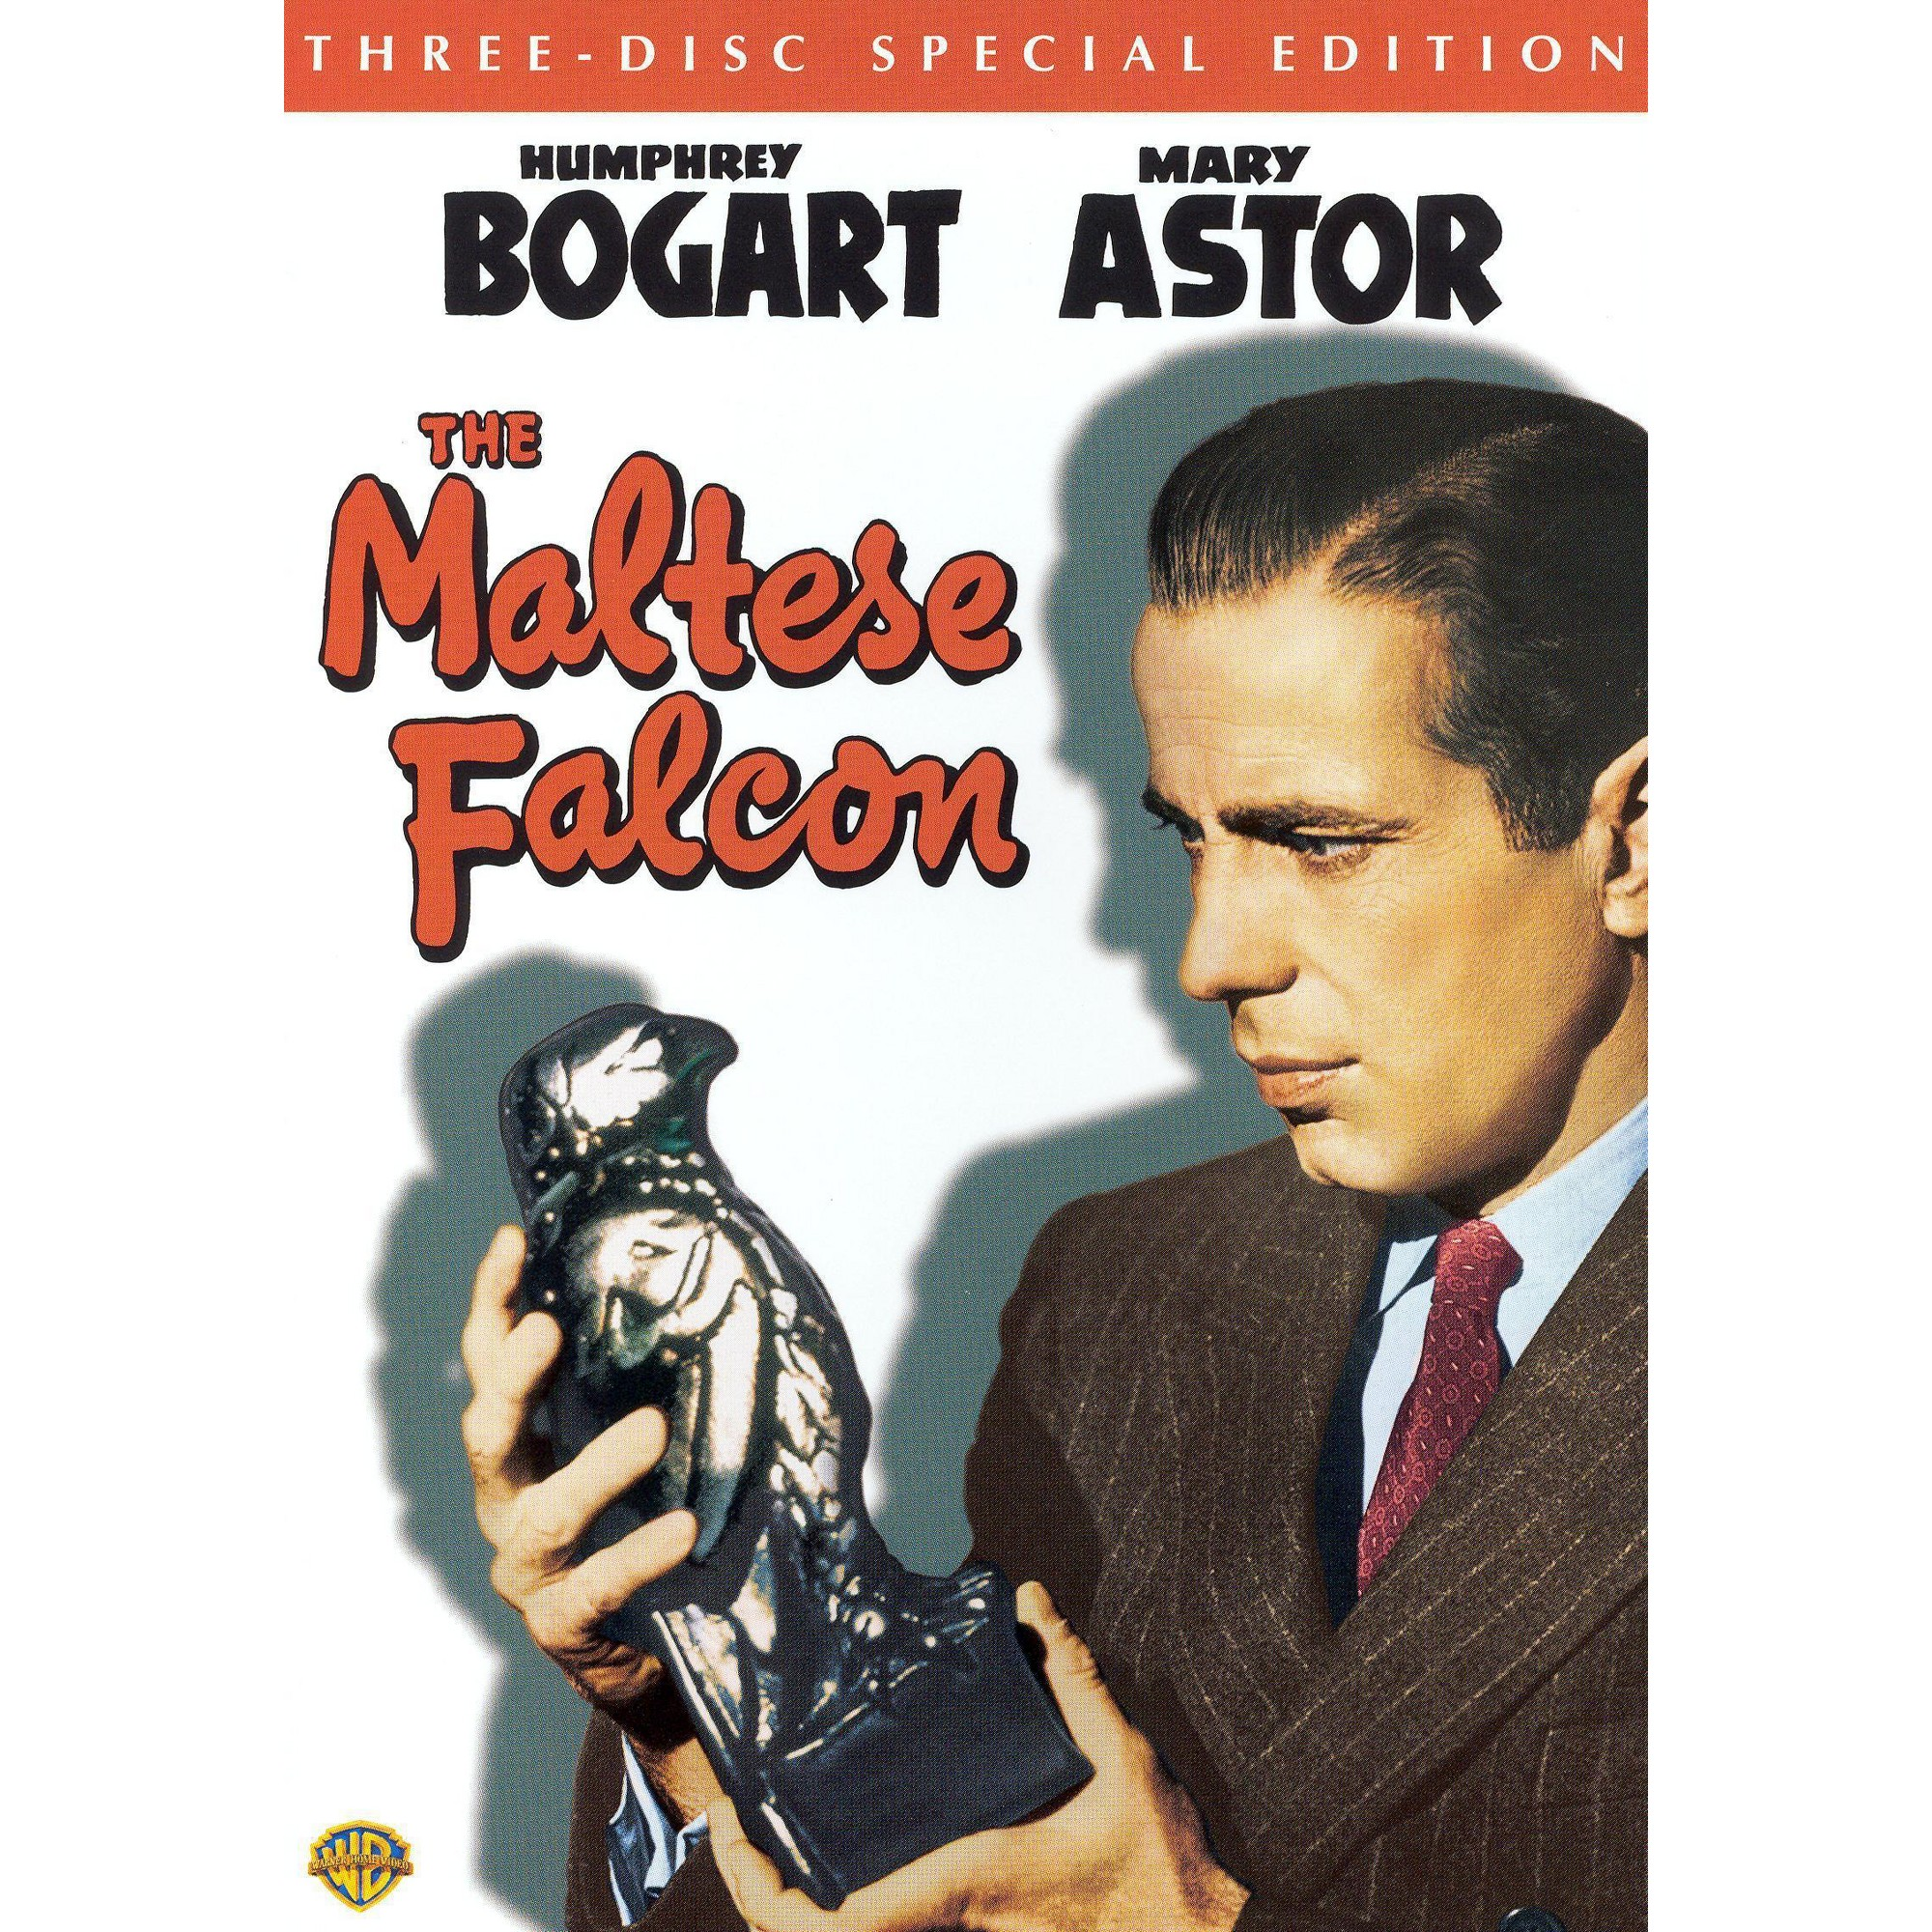 The Maltese Falcon [Special Edition] [3 Discs] Products